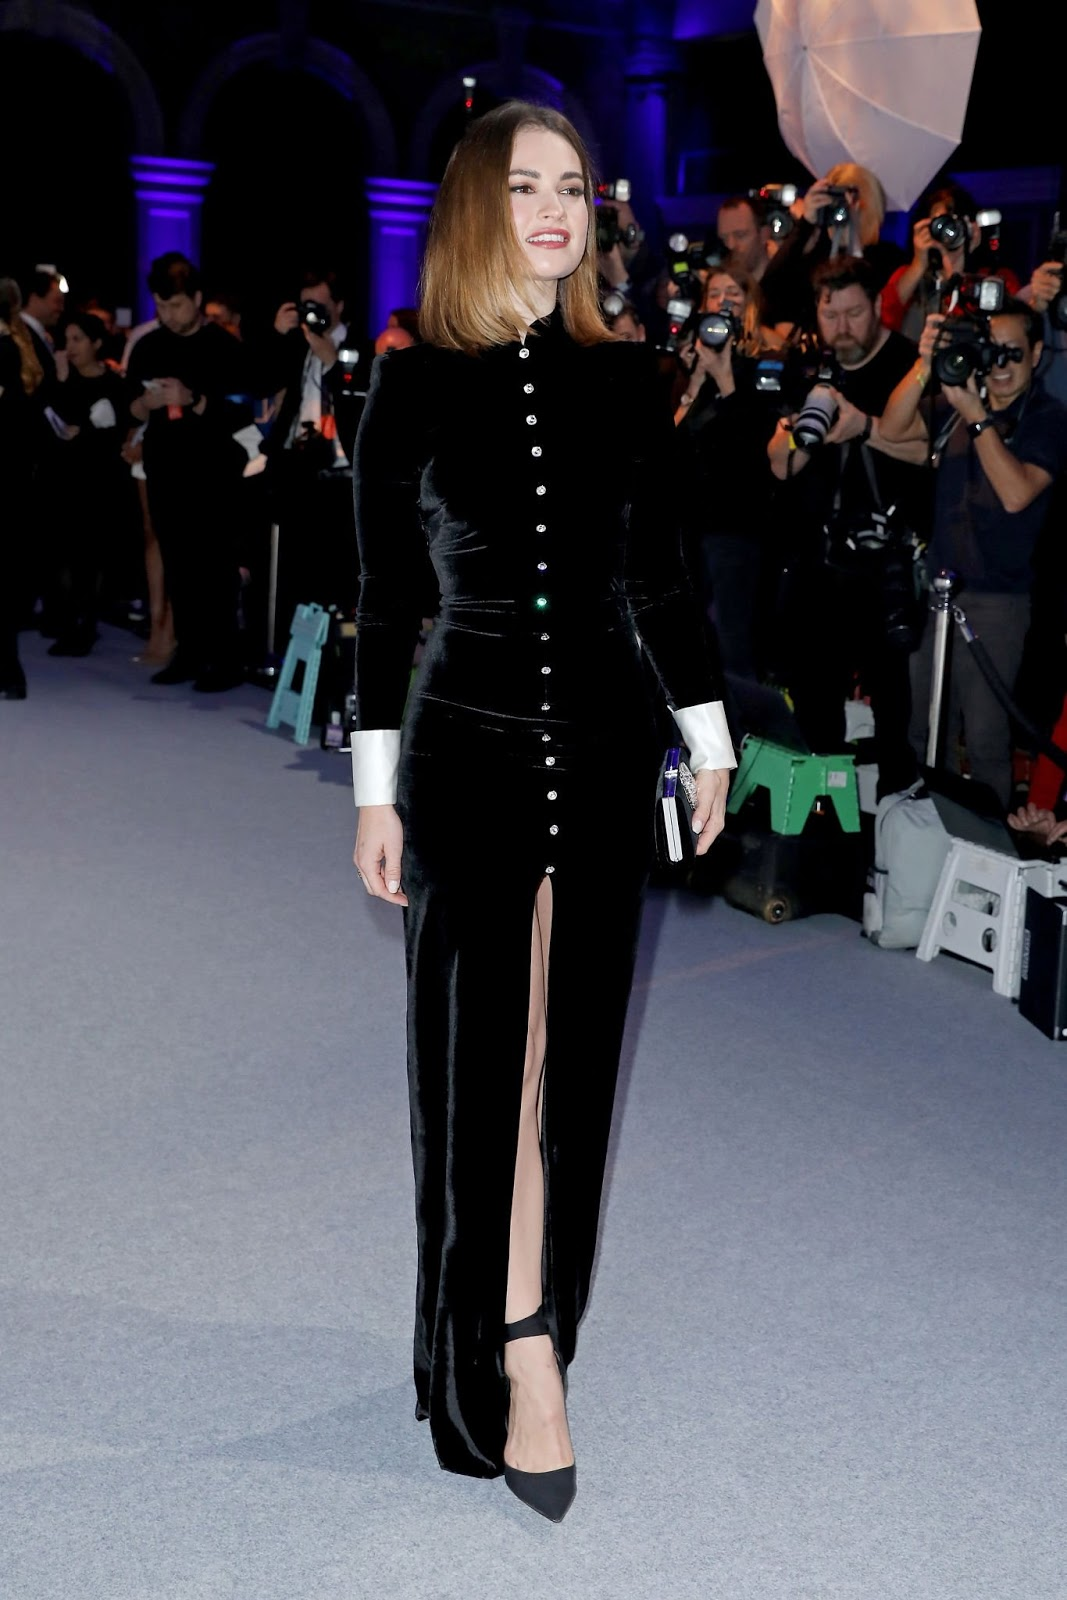 Lily attending the 22nd British Independent Film Awards at Old Billingsgate in London